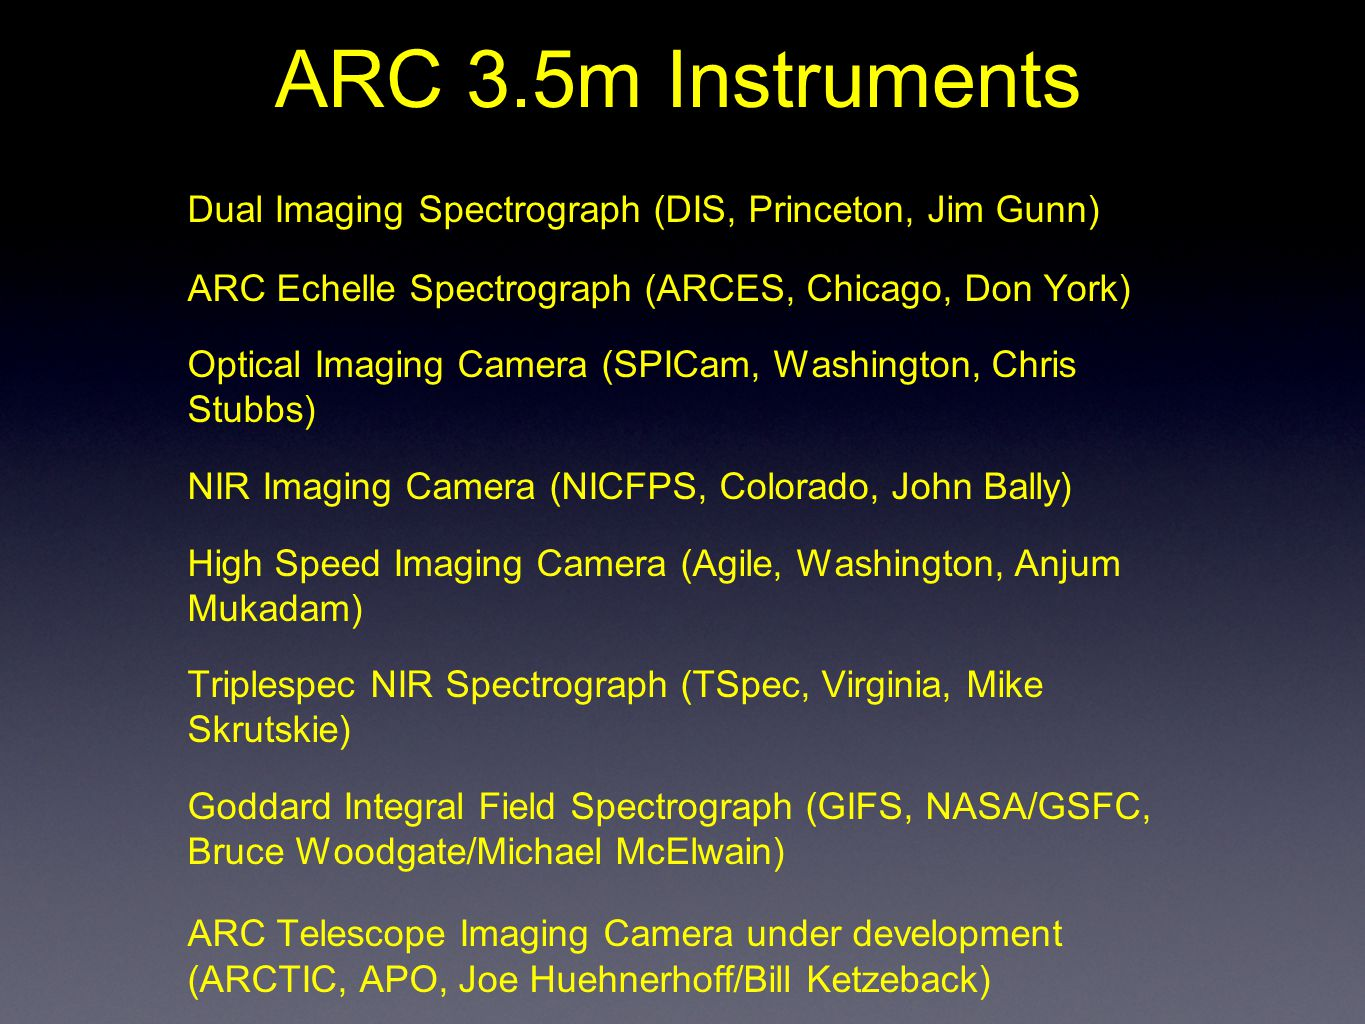 ARC 3.5m Instruments Dual Imaging Spectrograph (DIS, Princeton, Jim Gunn) ARC Echelle Spectrograph (ARCES, Chicago, Don York) Optical Imaging Camera (